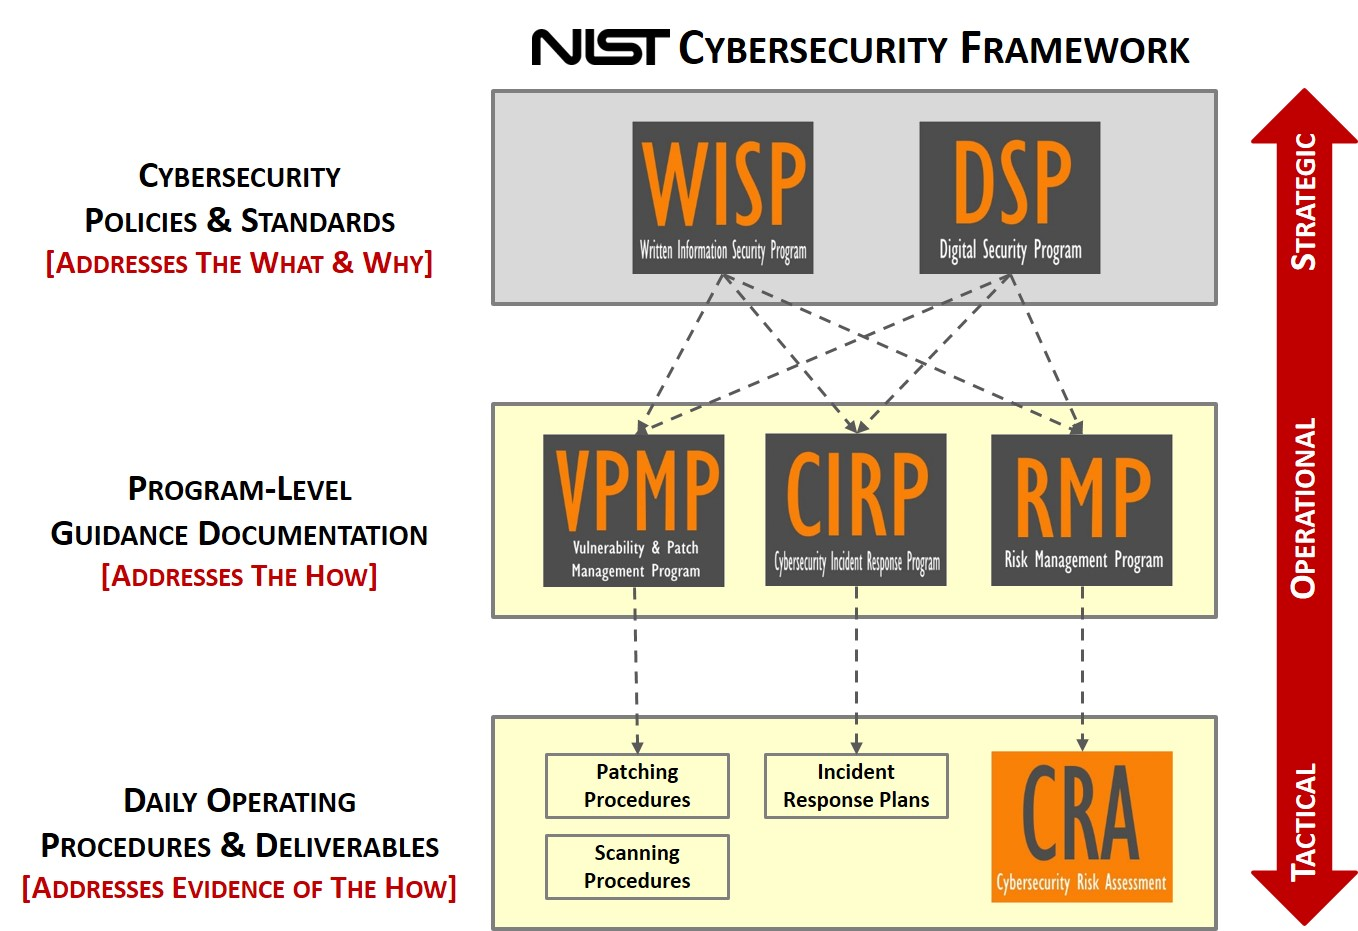 nist-cybersecurity-framework-csf-compliance-product-policies-irp-incident-response-risk-management-vulnerability-management.jpg